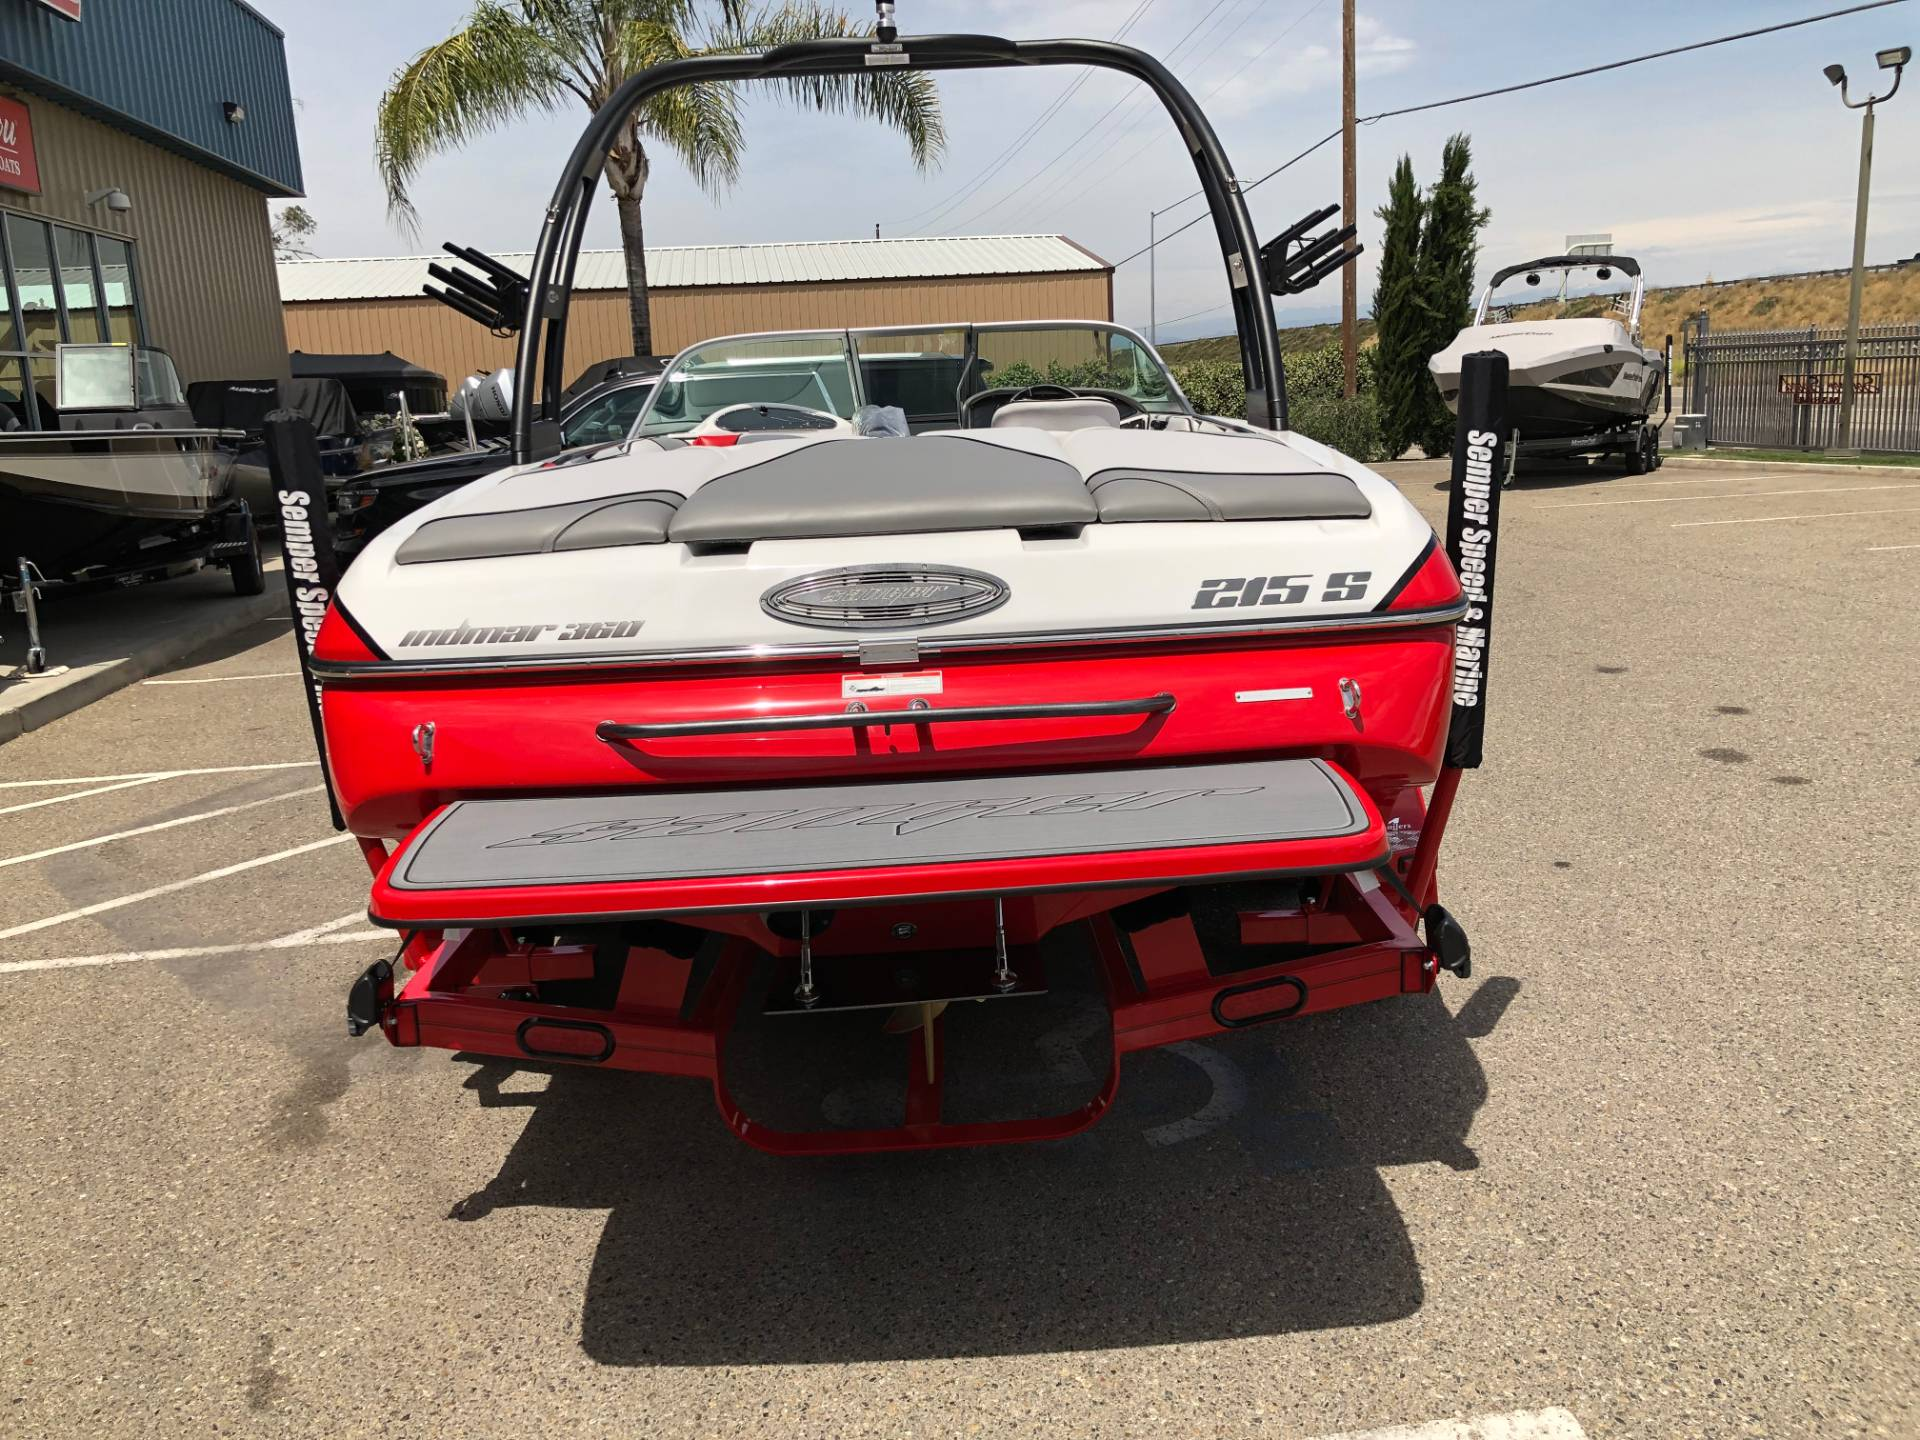 2019 Sanger Boats 215 S in Madera, California - Photo 4